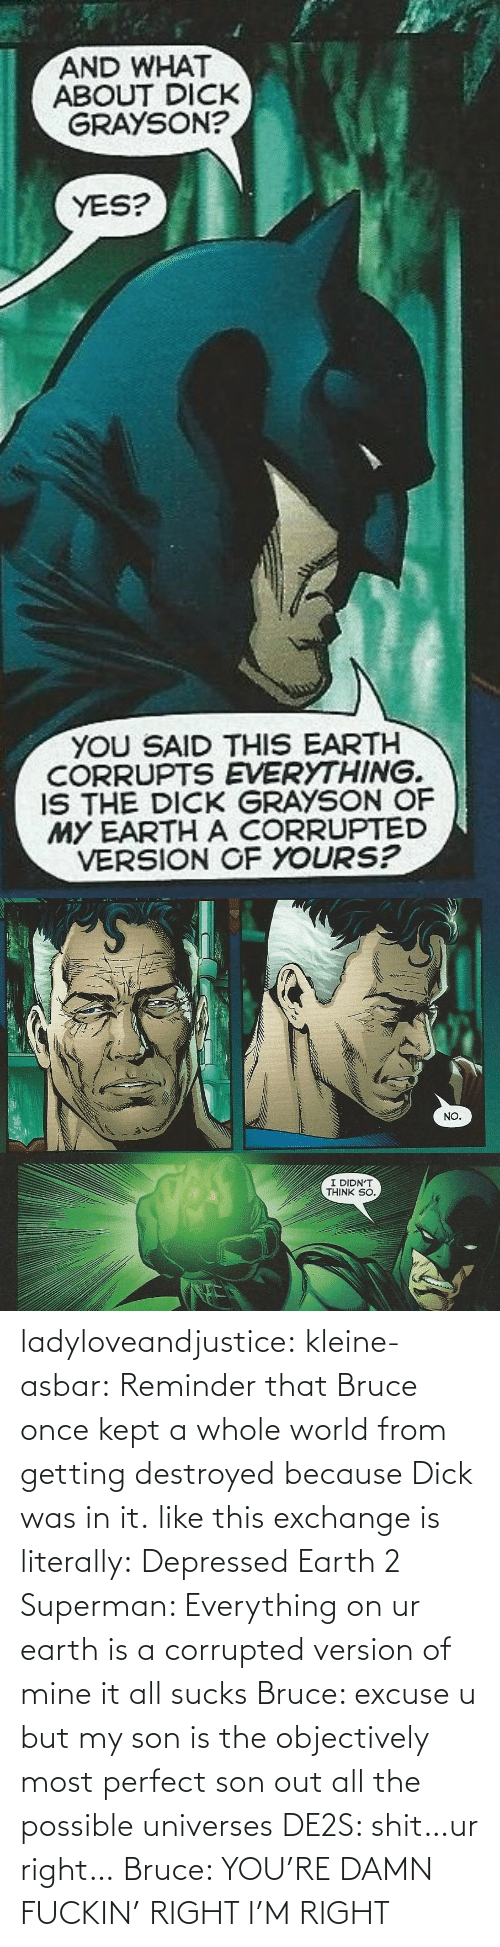 mine: ladyloveandjustice:  kleine-asbar: Reminder that Bruce once kept a whole world from getting destroyed because Dick was in it. like this exchange is literally: Depressed Earth 2 Superman: Everything on ur earth is a corrupted version of mine it all sucks Bruce: excuse u but my son is the objectively most perfect son out all the possible universes DE2S: shit…ur right… Bruce: YOU'RE DAMN FUCKIN' RIGHT I'M RIGHT